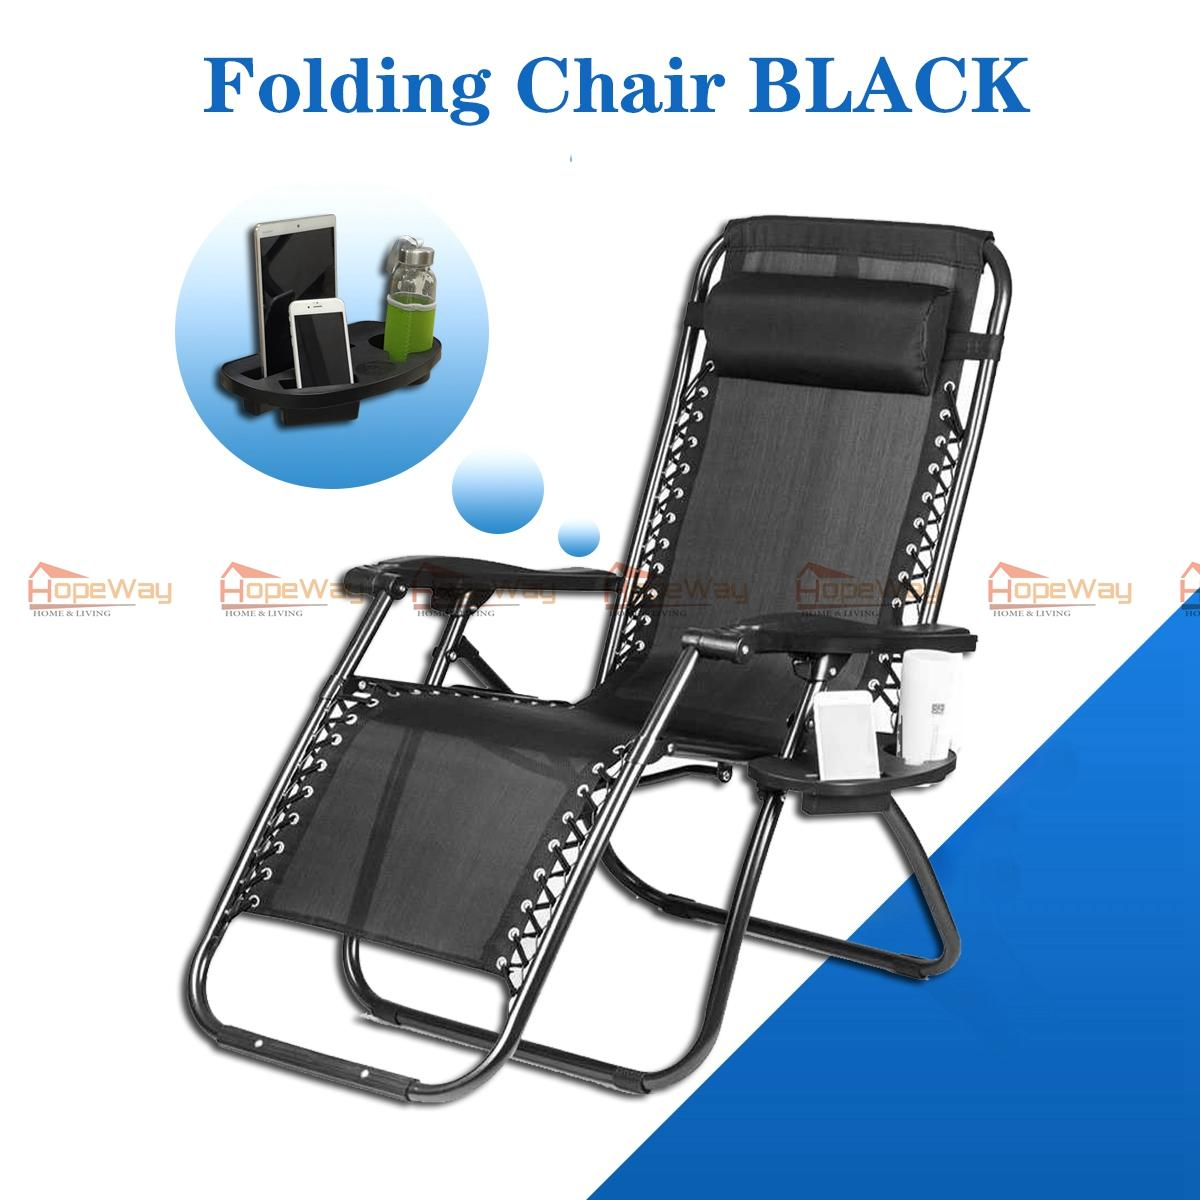 Hopeway Foldable Zero Gravity Lounge Reclining Chair With Adjustable Headrest For Home And Office Napping Patio Garden Camping Beach Black